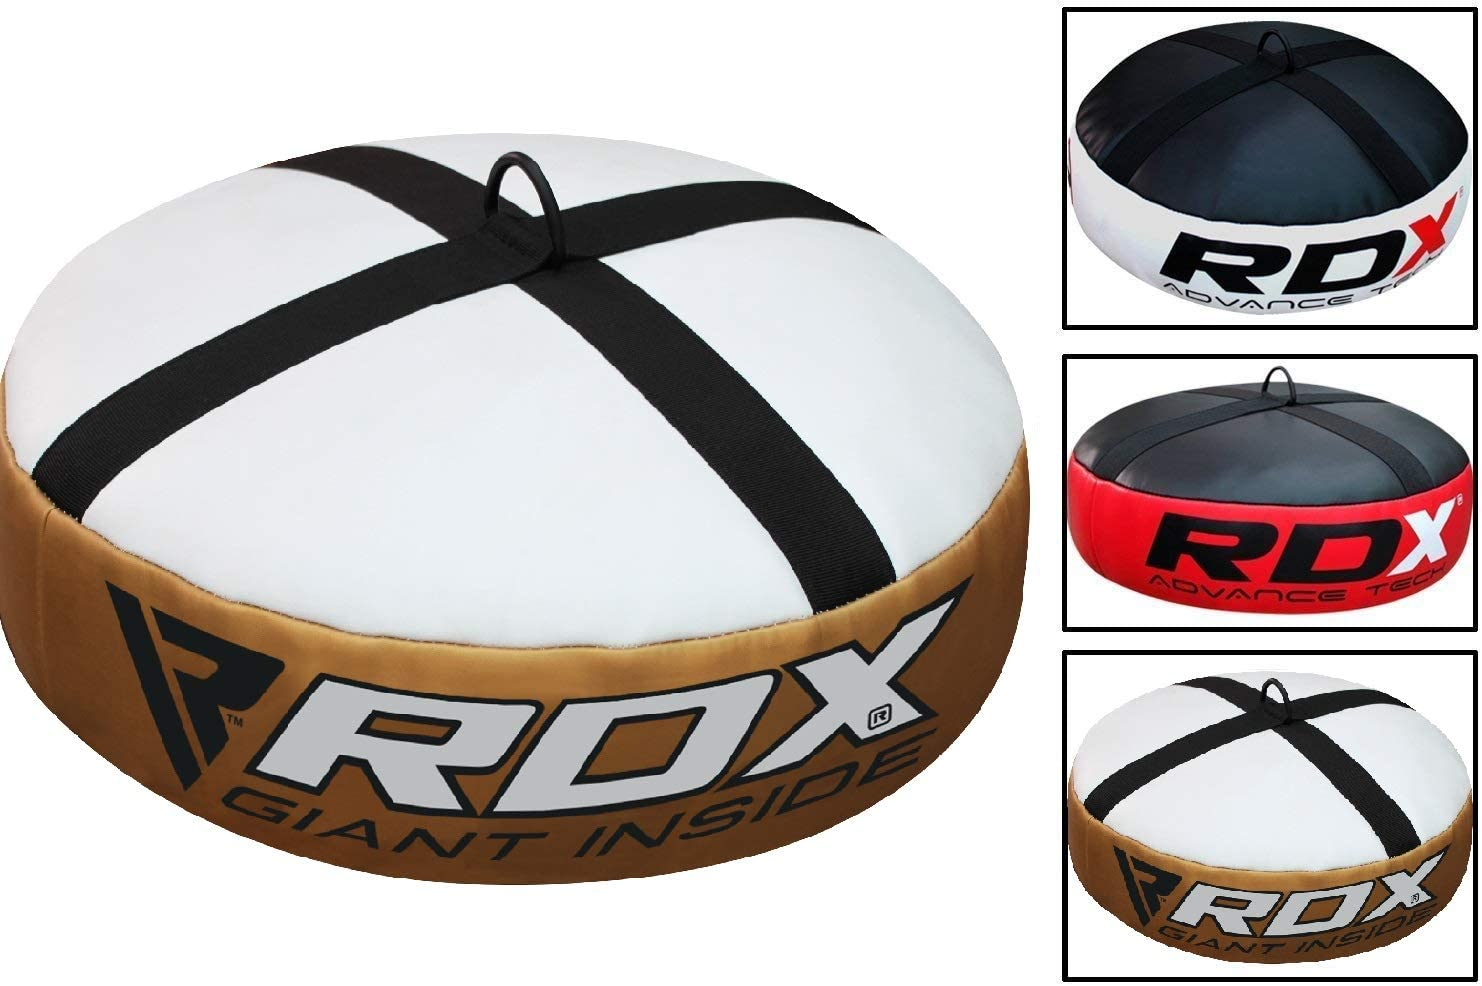 RDX Double End Anchor Bag for Boxing Training, Heavy Duty Floor Punching Bag, Great for Punching, MMA, Kickboxing, Muay Thai, Karate, BJJ and Taekwondo